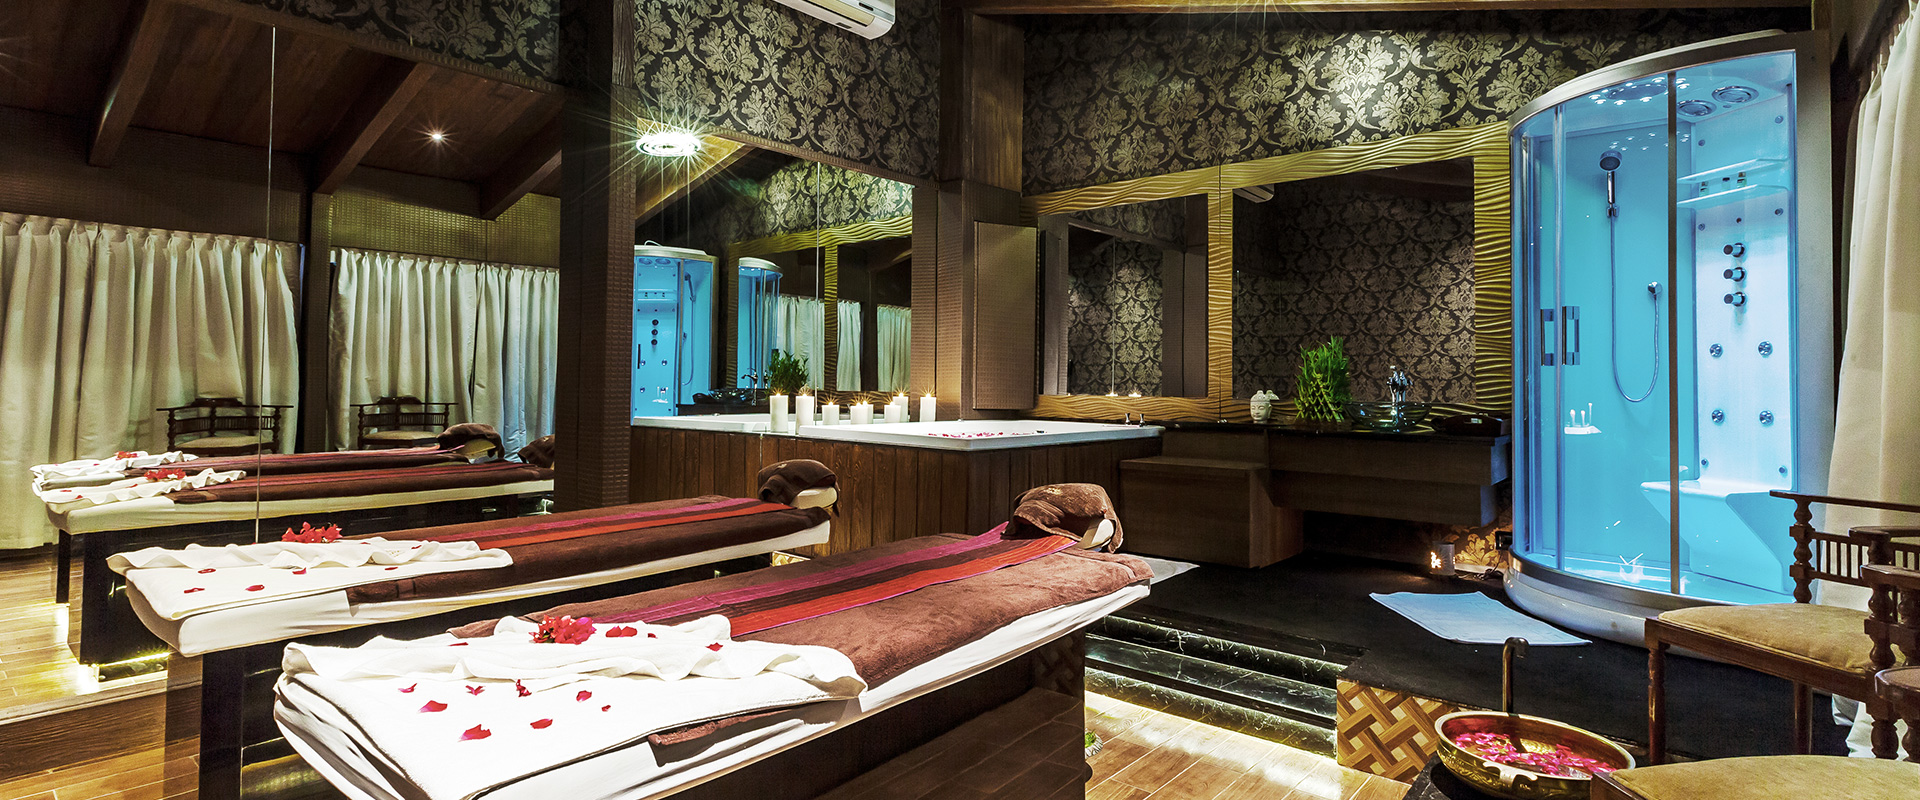 interiors of the spa service